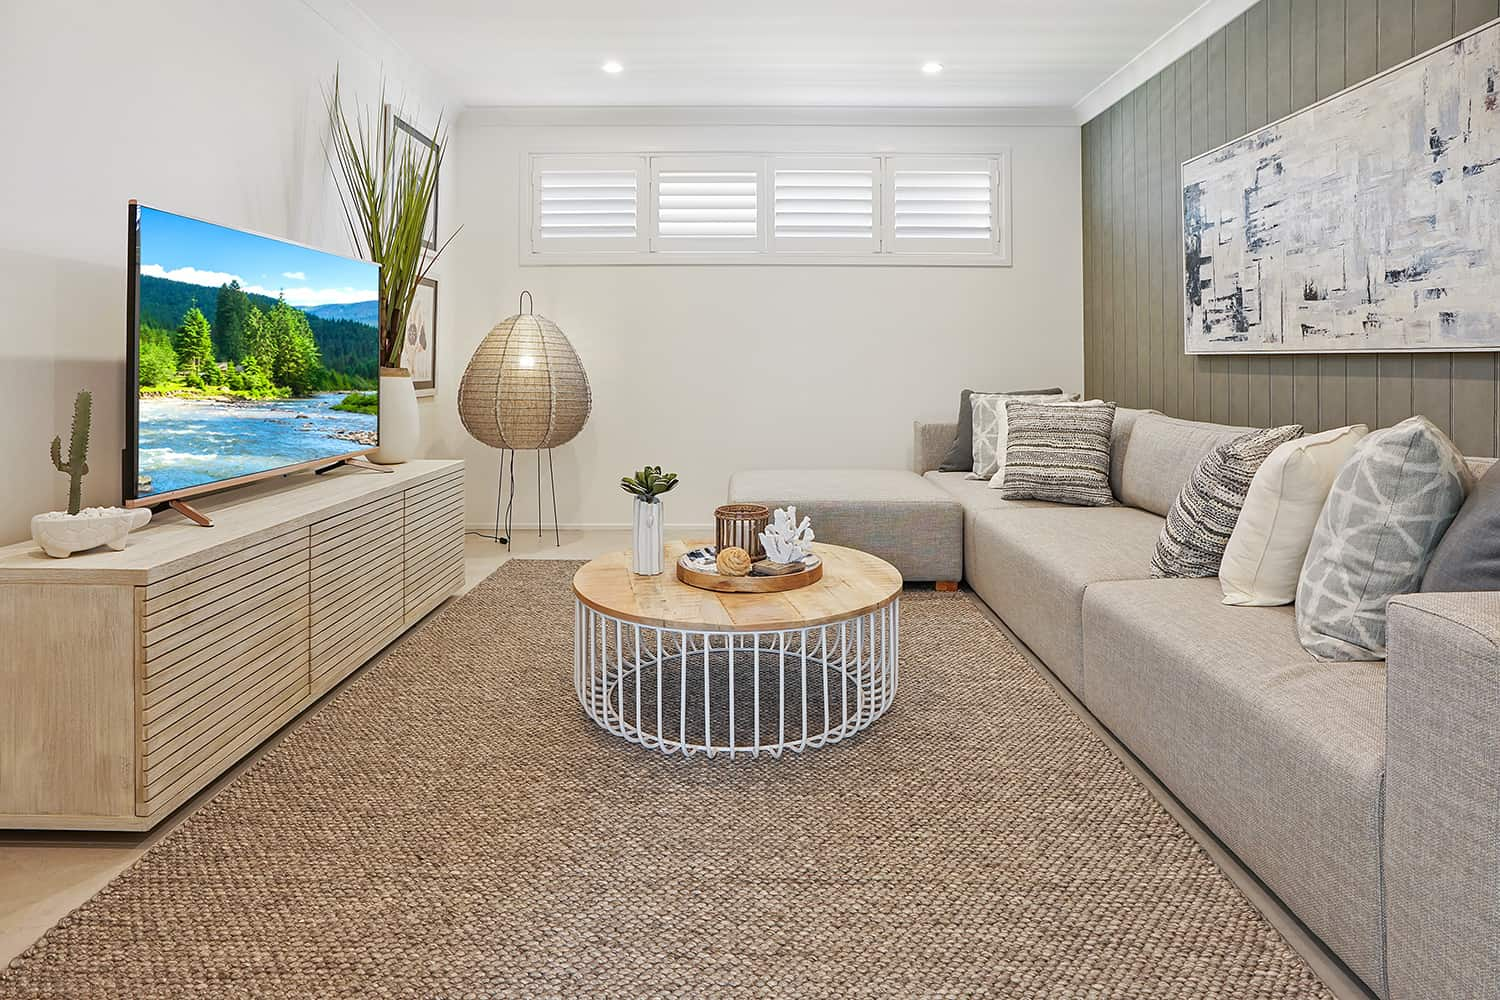 Harmony Four 23 - Media image. On display at Housing World Nowra